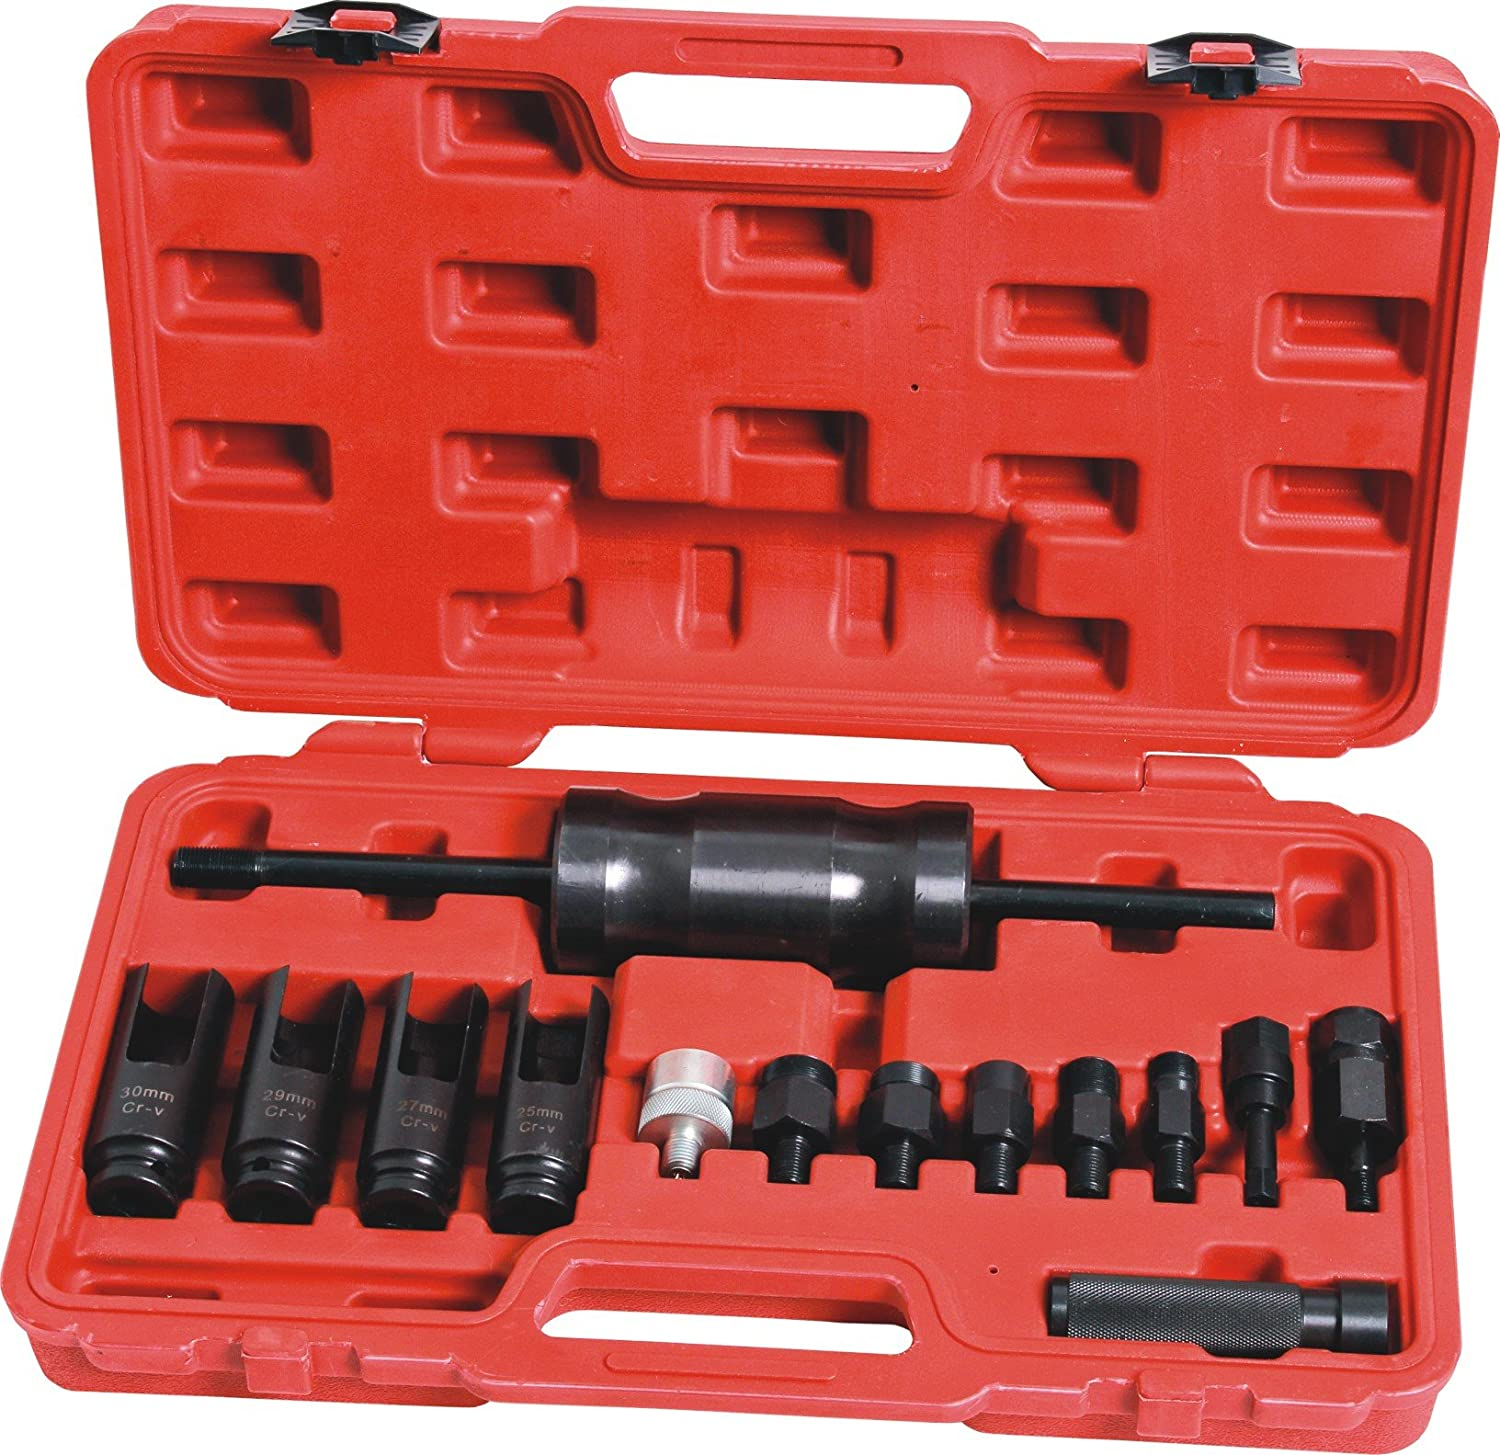 Diesel Injector Extractor Puller With Common Rail Adaptor Slide Hammer Removal Tool Kit Generic